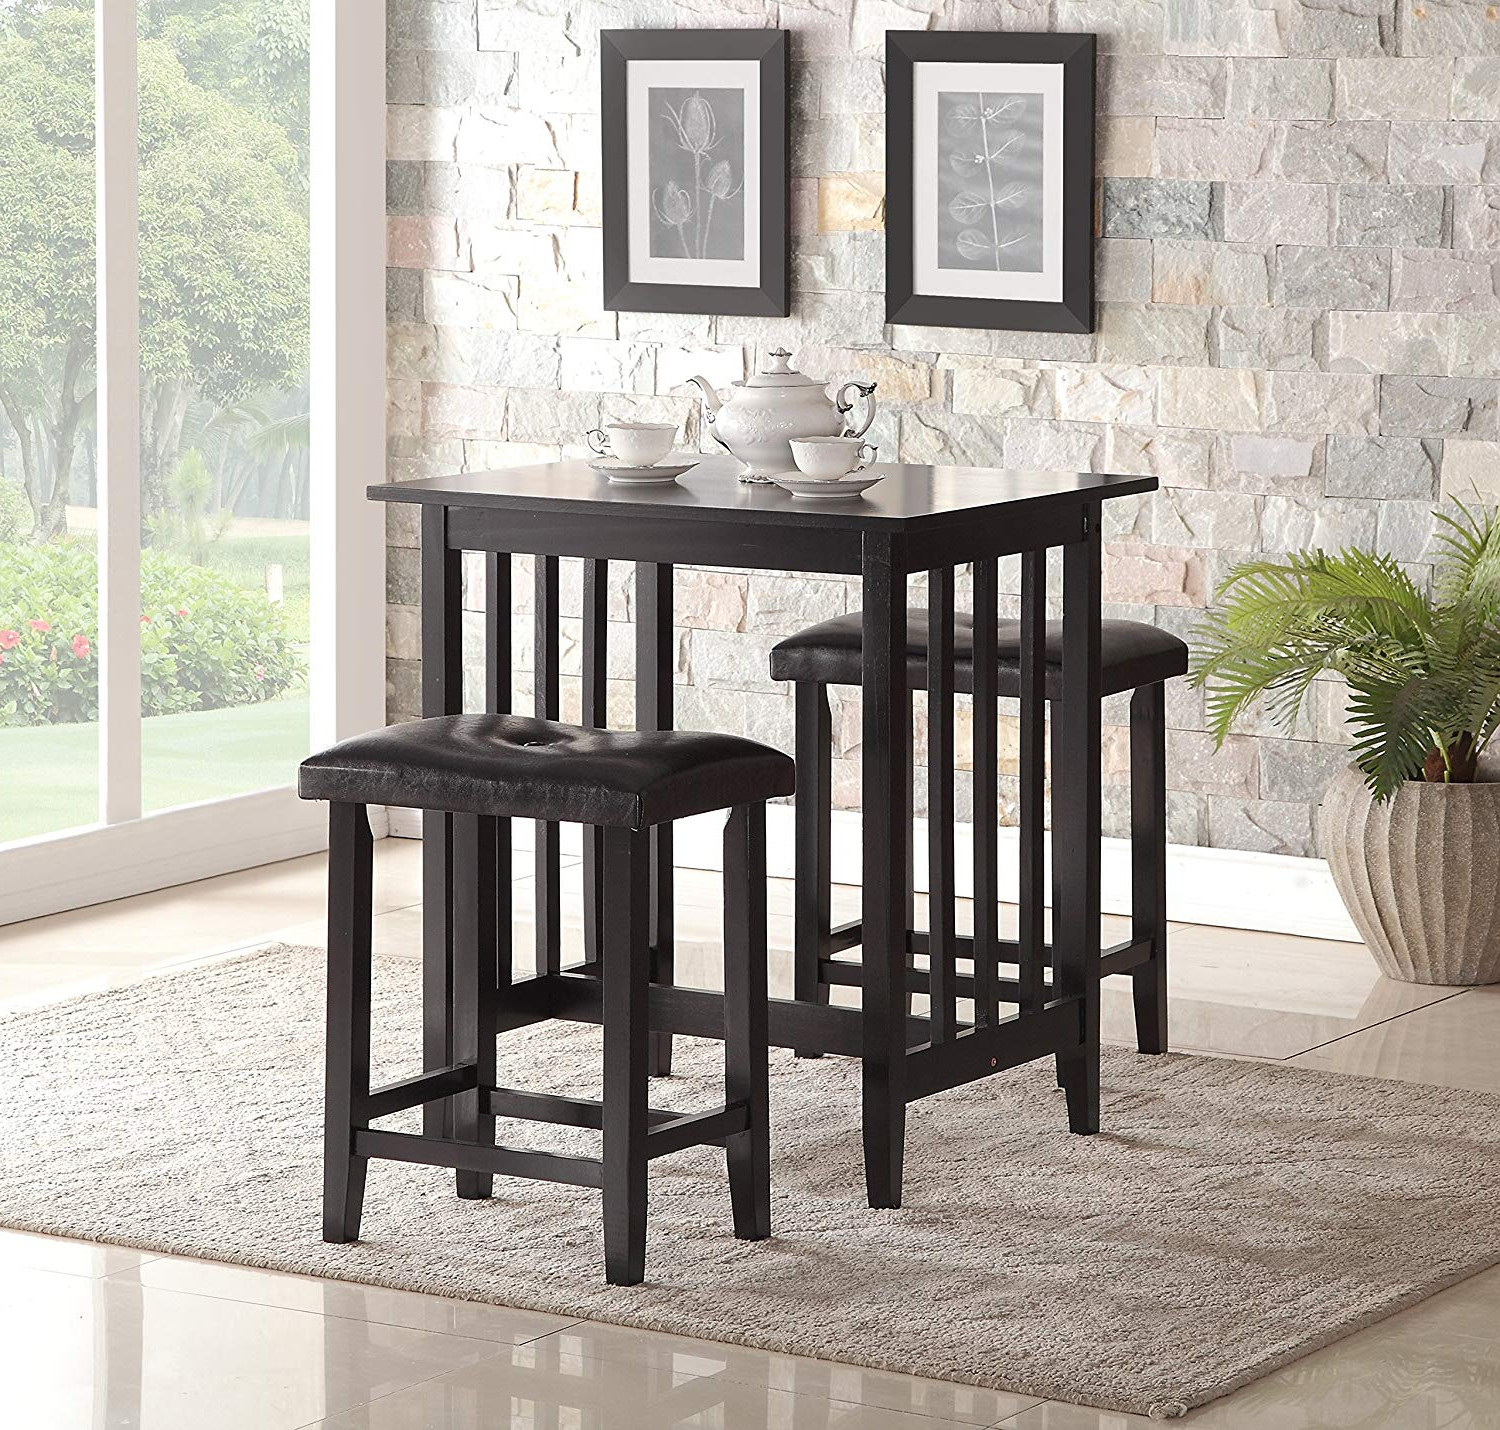 Newest Moorehead 3 Piece Counter Height Dining Sets For Roundhill Furniture 3 Piece Counter Height Dining Set With Saddleback  Stools, Black (Gallery 5 of 20)